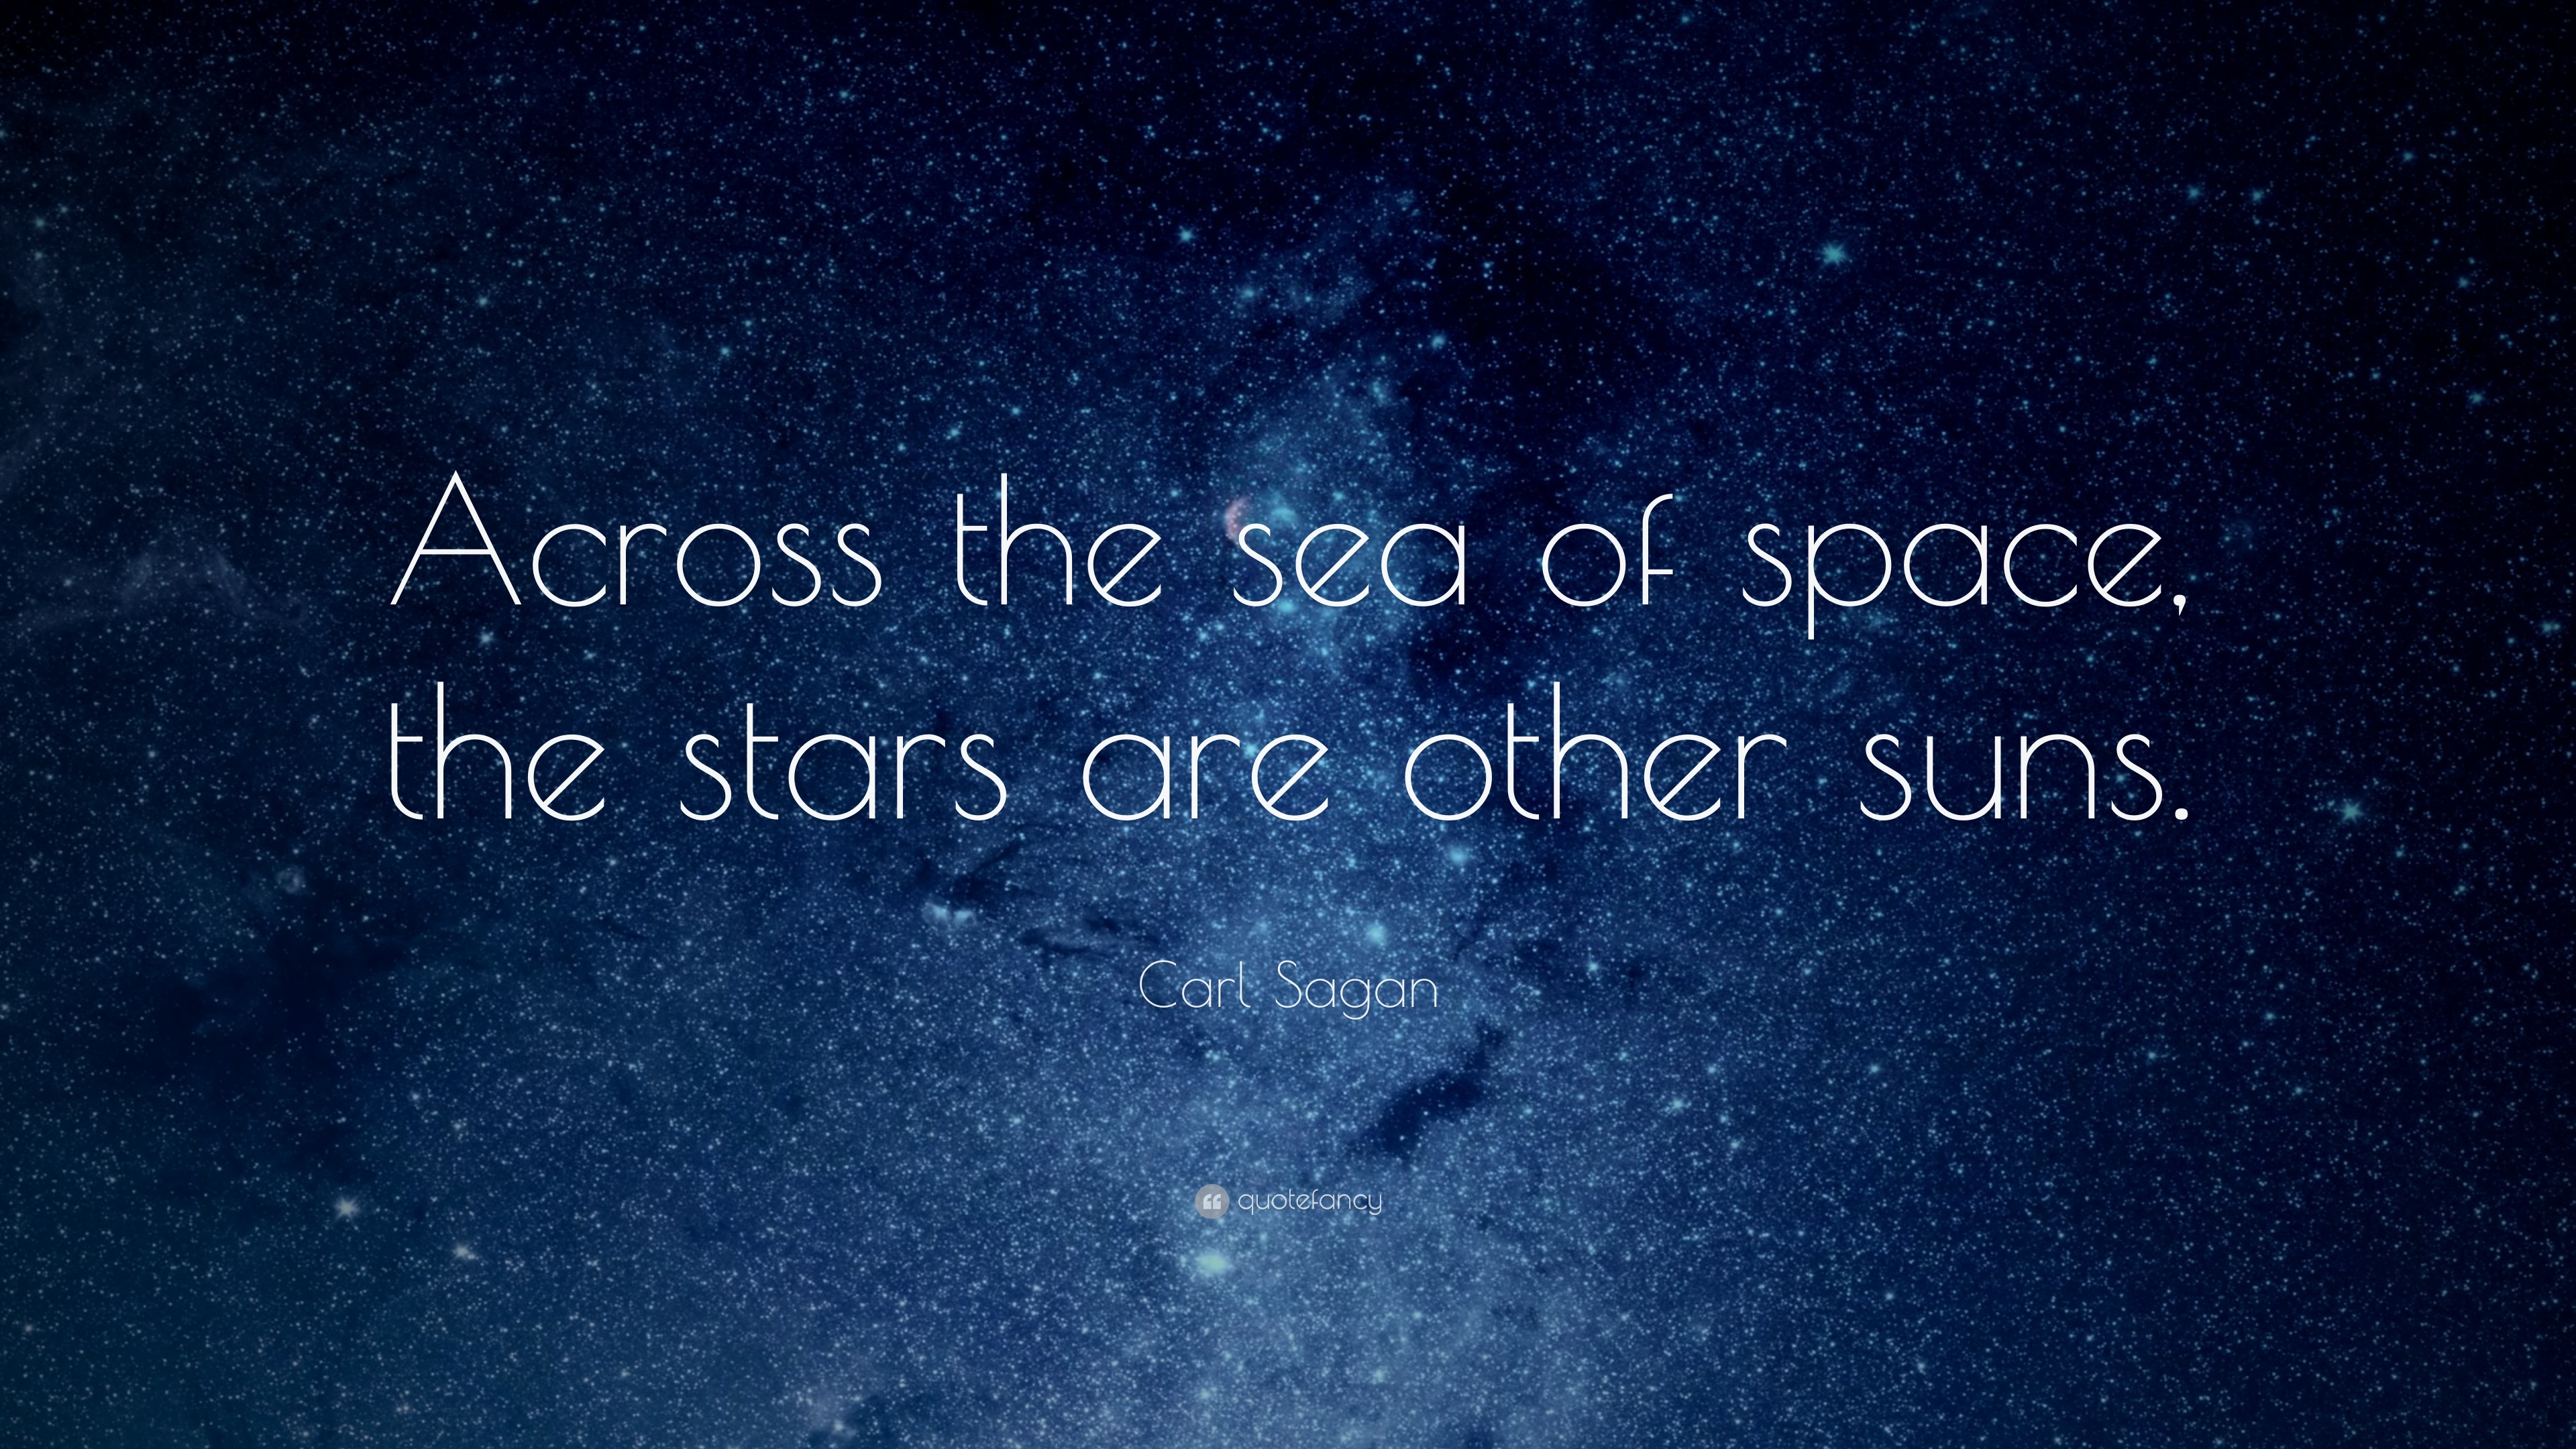 Carl Sagan Quote Across The Sea Of Space The Stars Are Other Suns